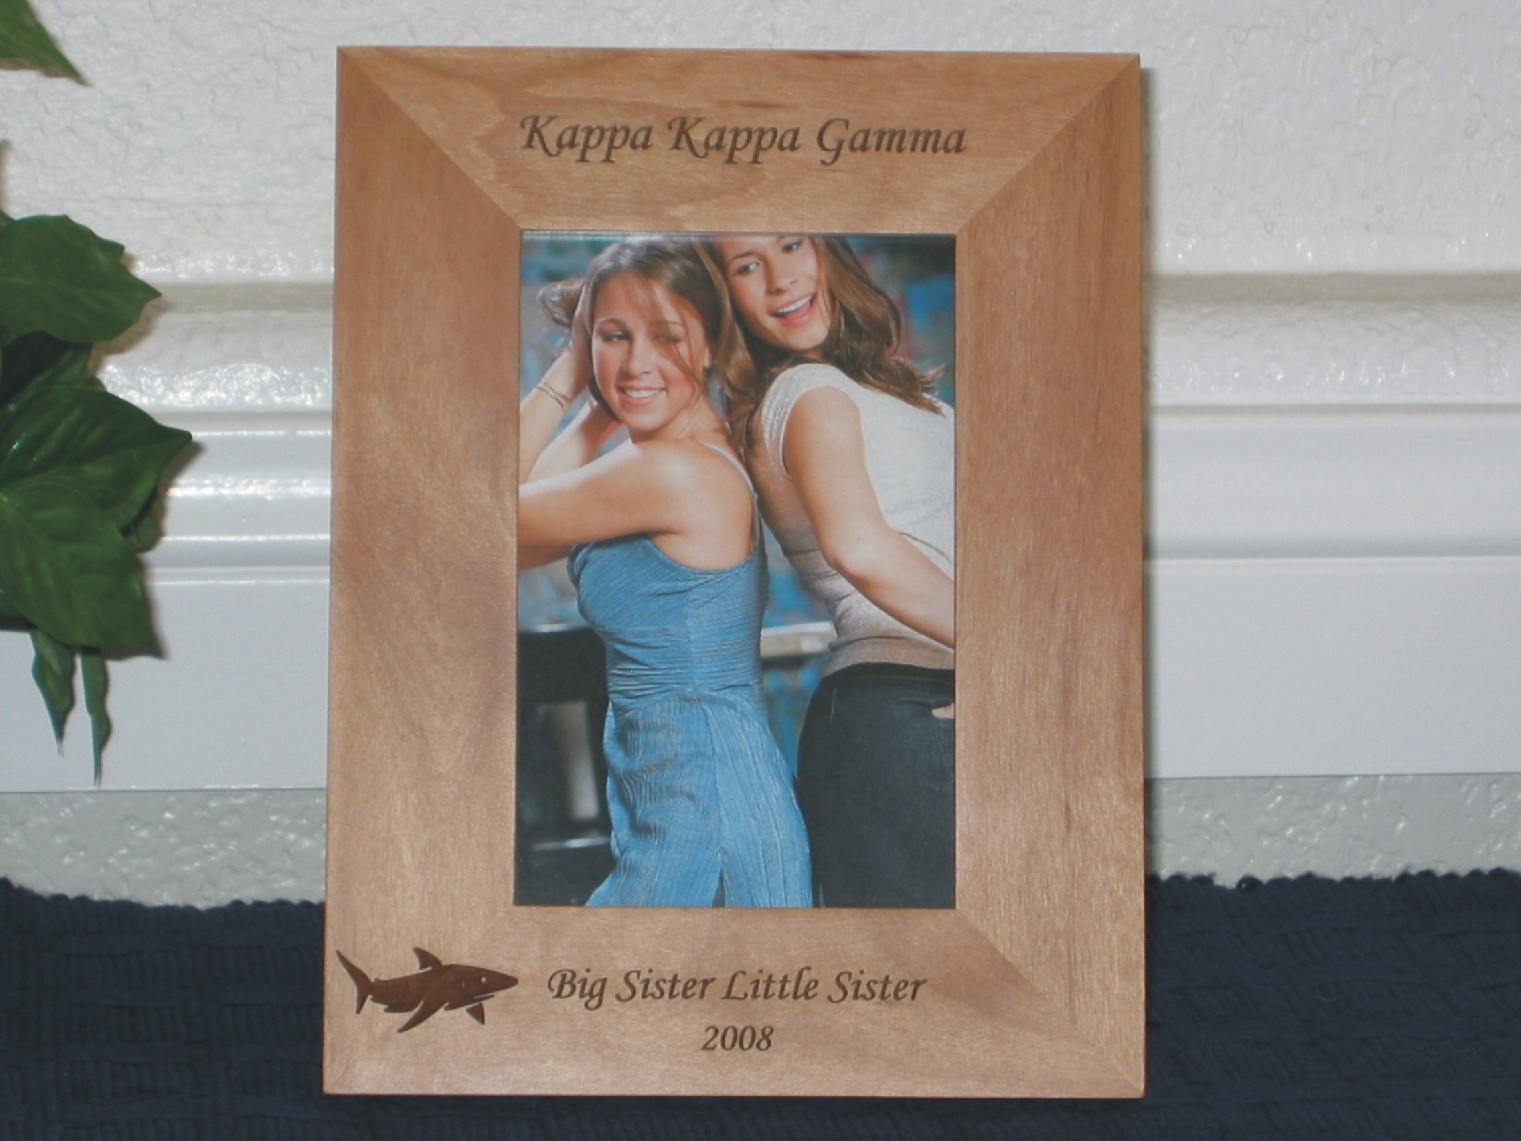 Shark Picture Frame - Personalized Frame - Laser Engraved Shark